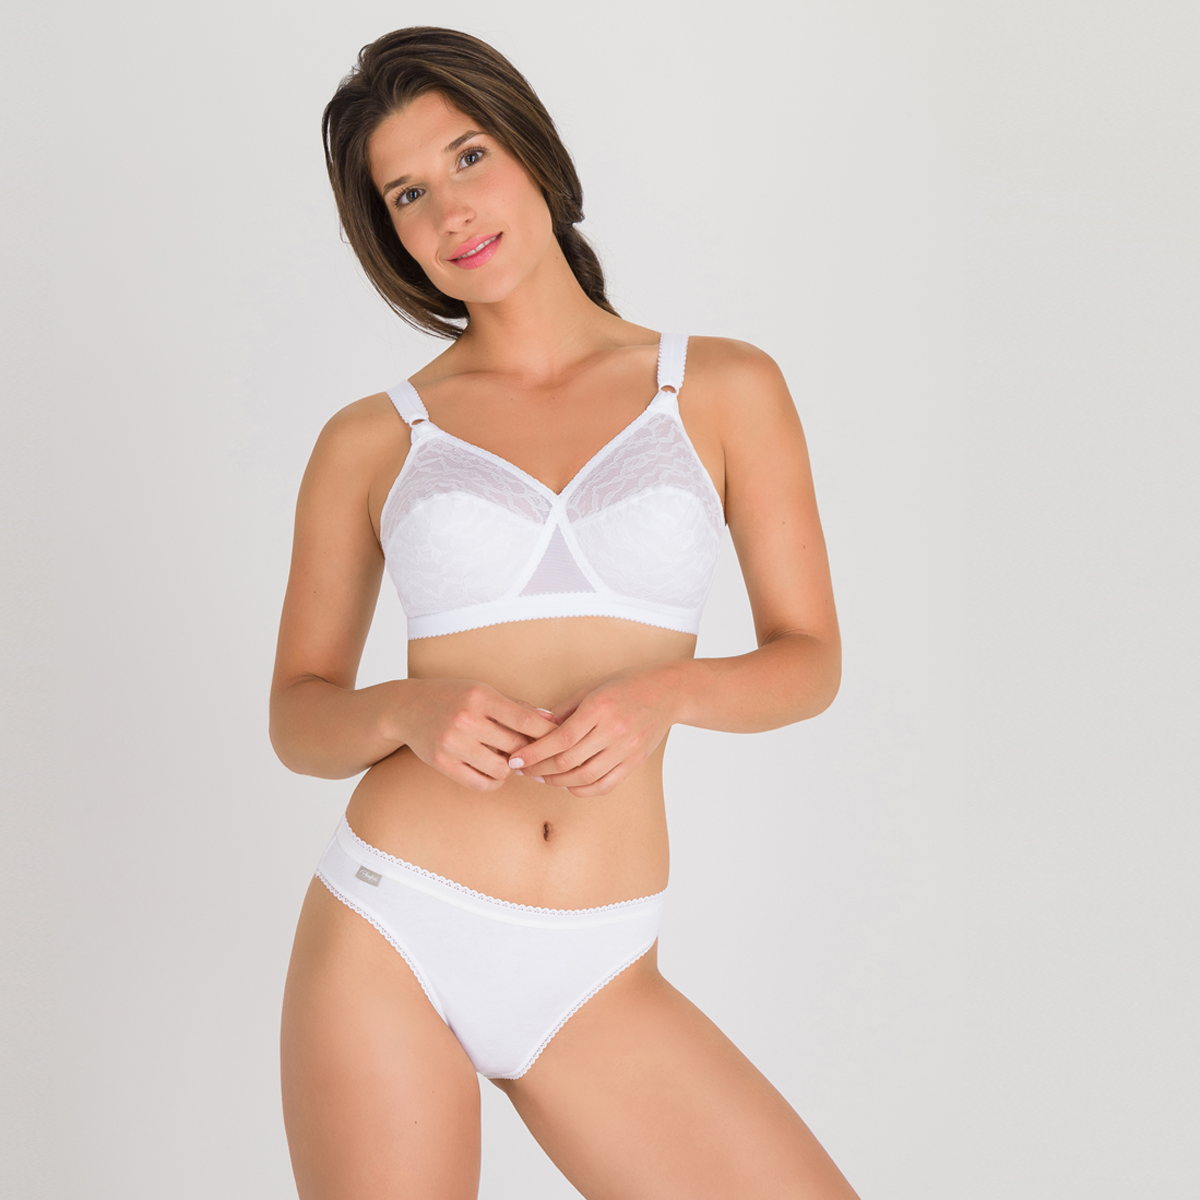 Non-wired Bra in White - Cross Your Heart 165, , PLAYTEX